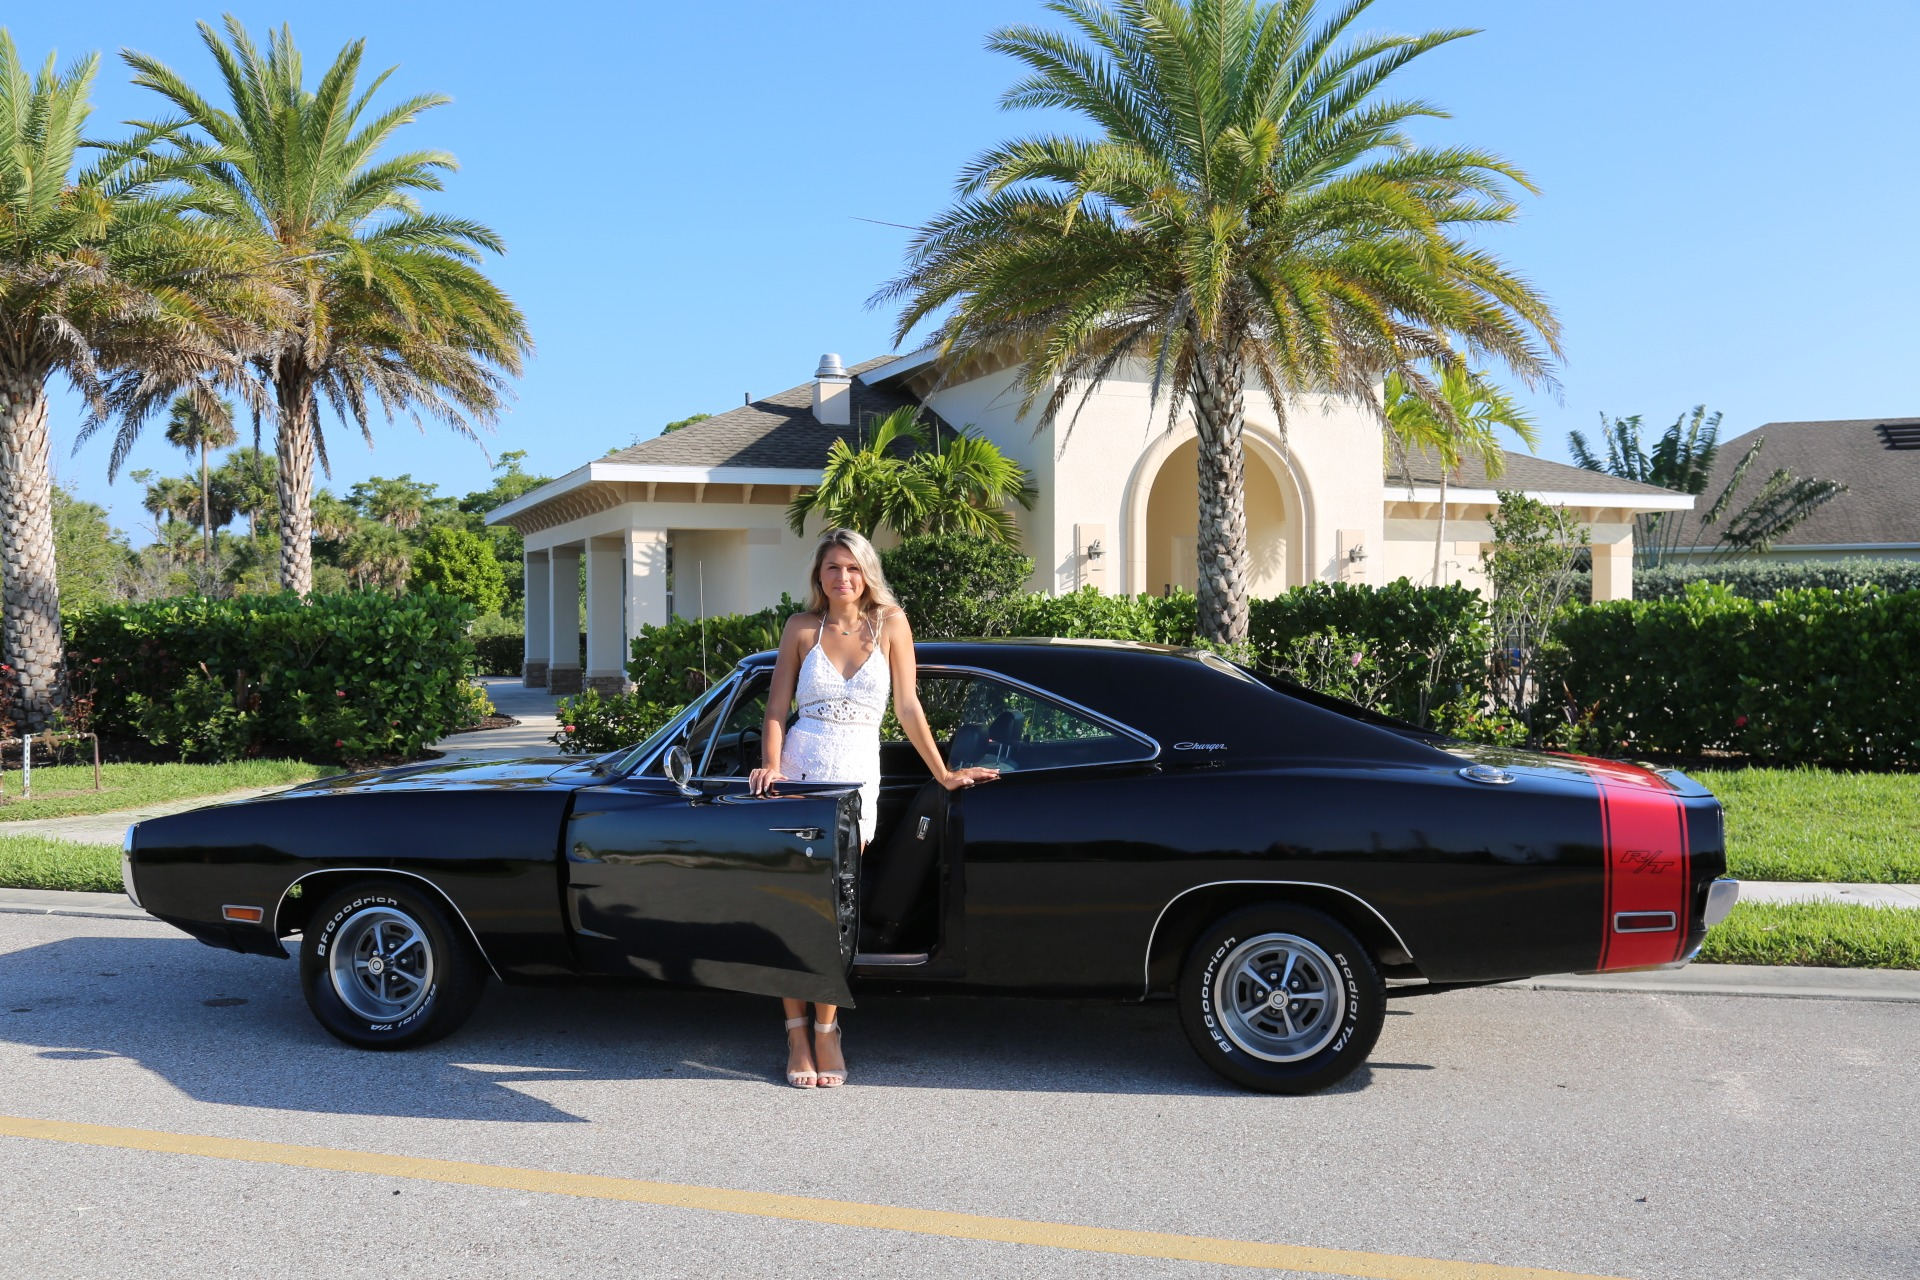 Used 1970 Dodge Charger Charger for sale $52,000 at Muscle Cars for Sale Inc. in Fort Myers FL 33912 7